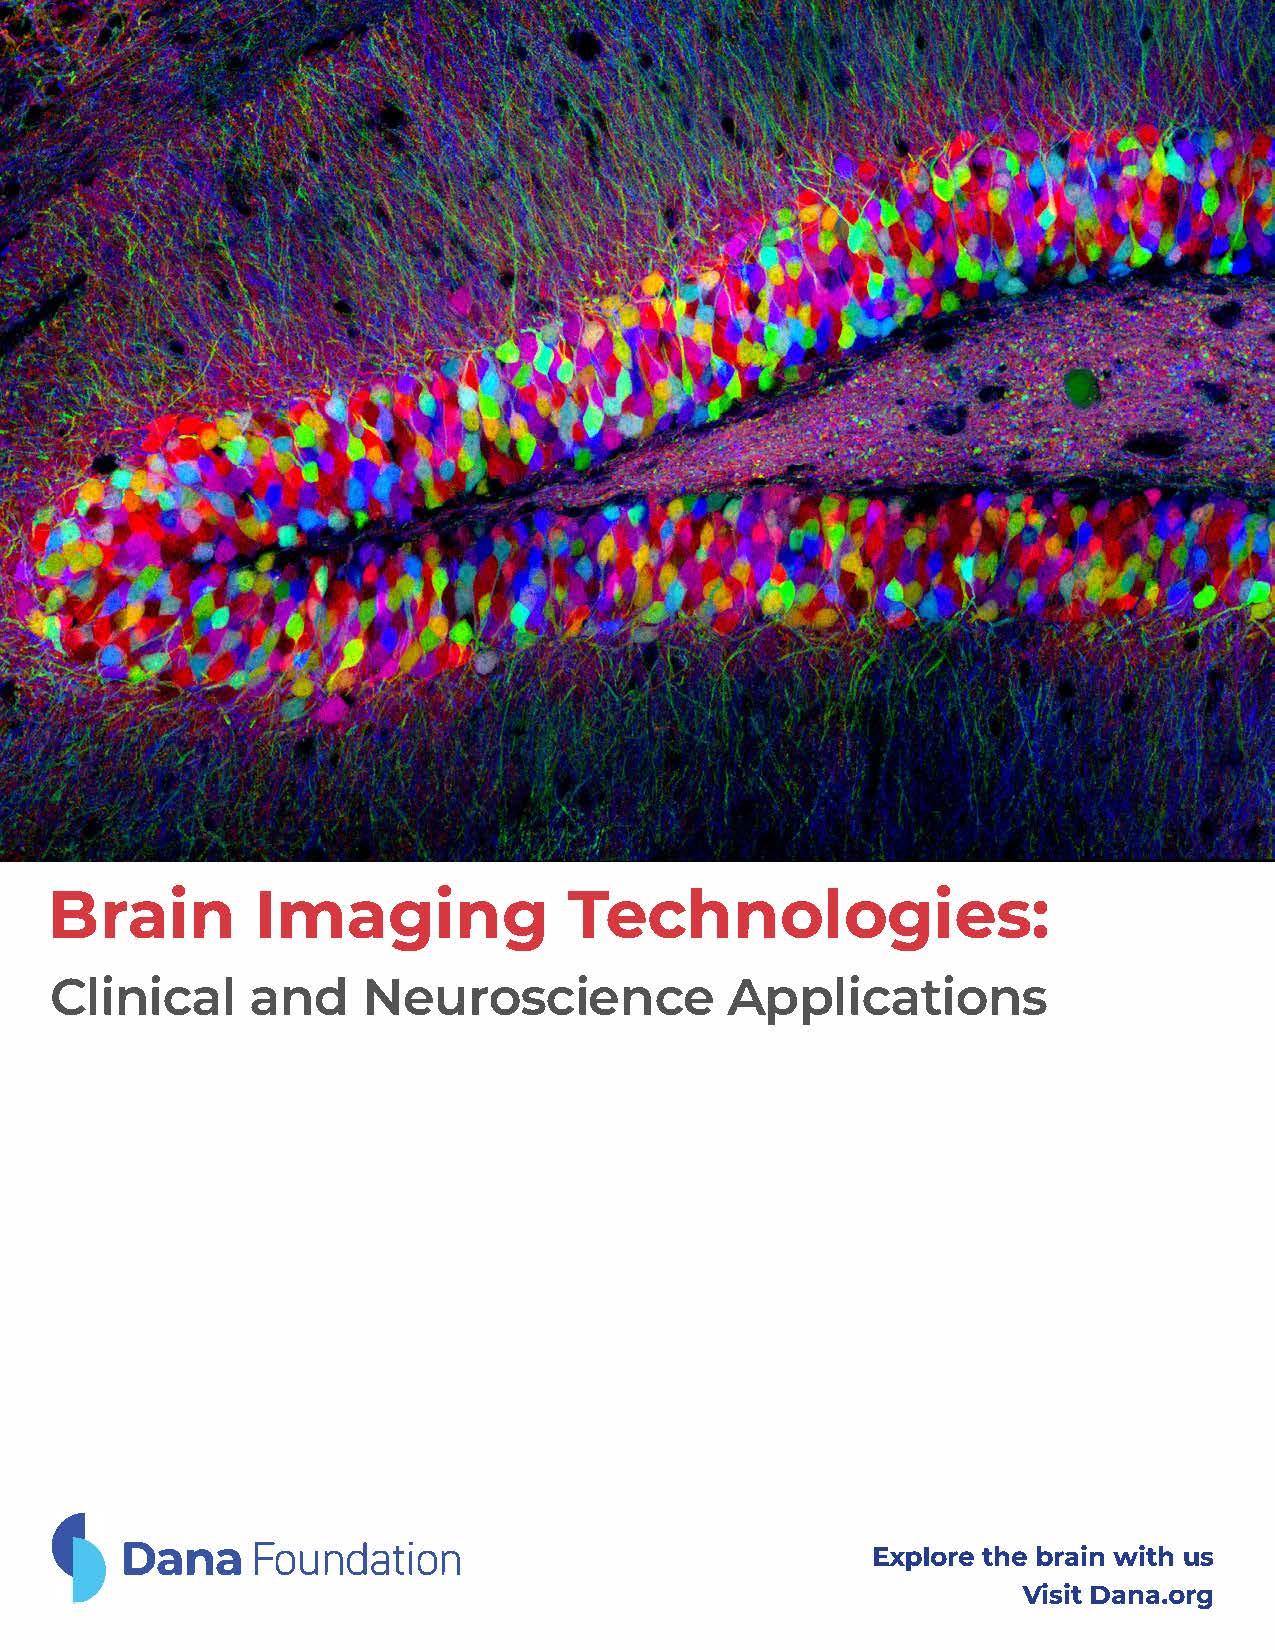 Imaging Technologies and Their Applications in Neuroscience